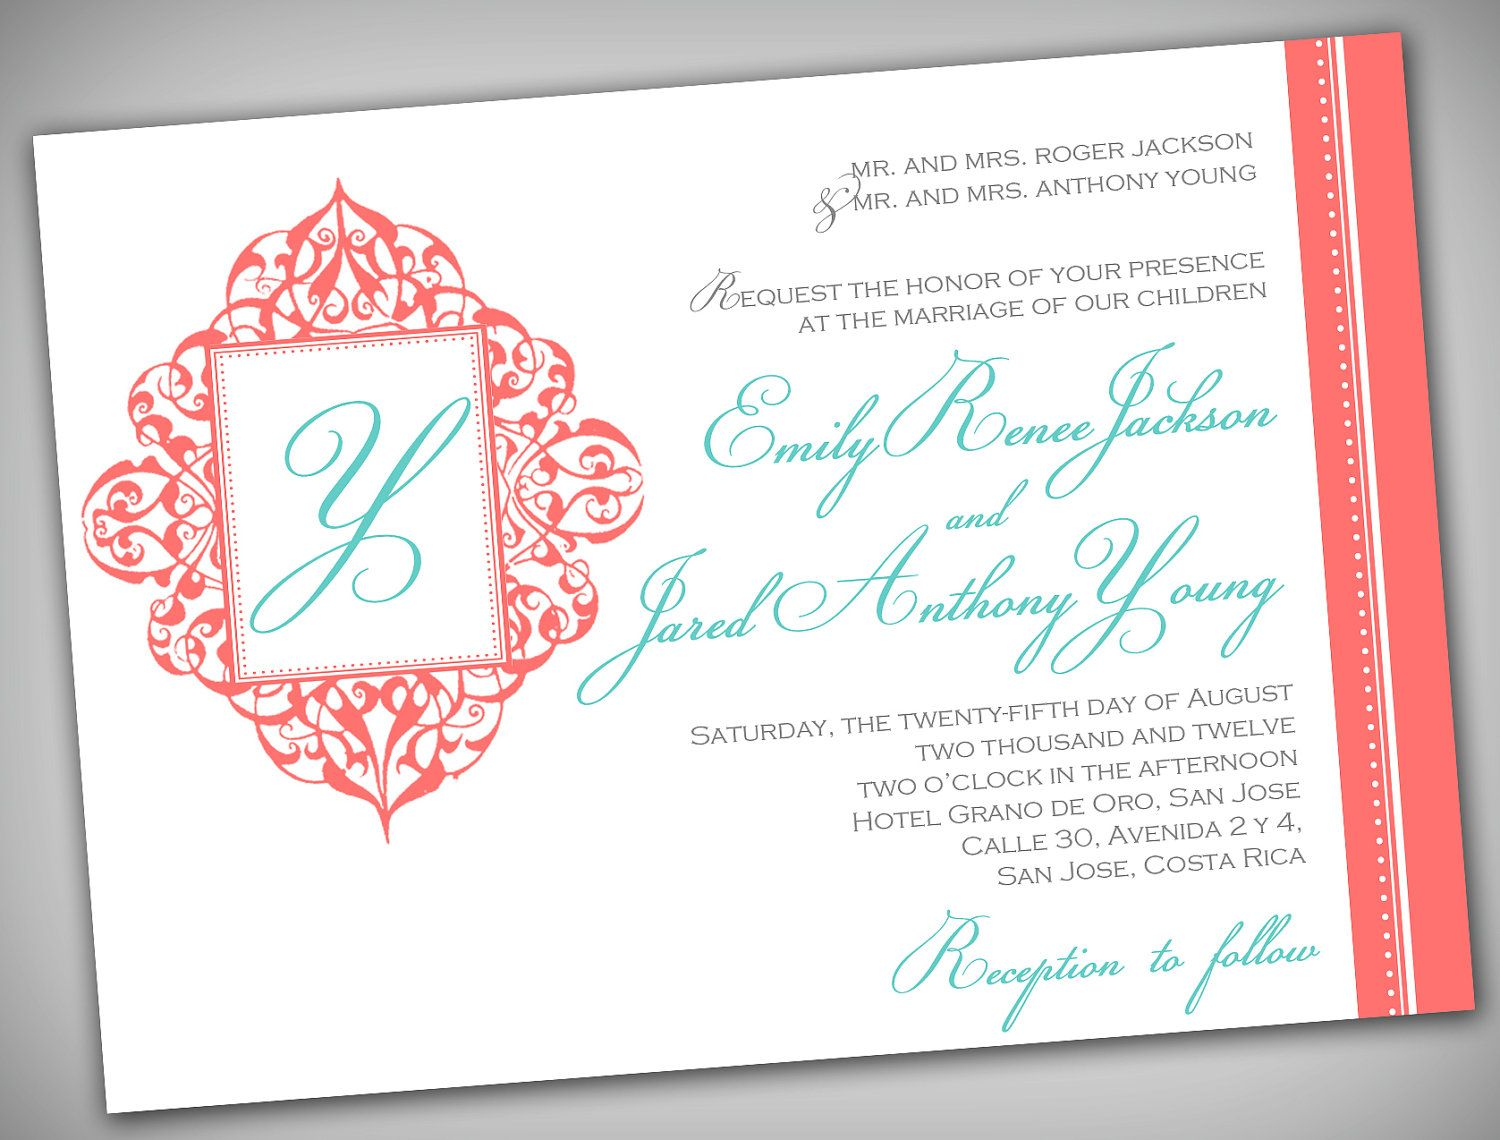 Turquoise And Coral Wedding Invitations: Coral And Turquoise Printable Wedding Invitation, Elegant